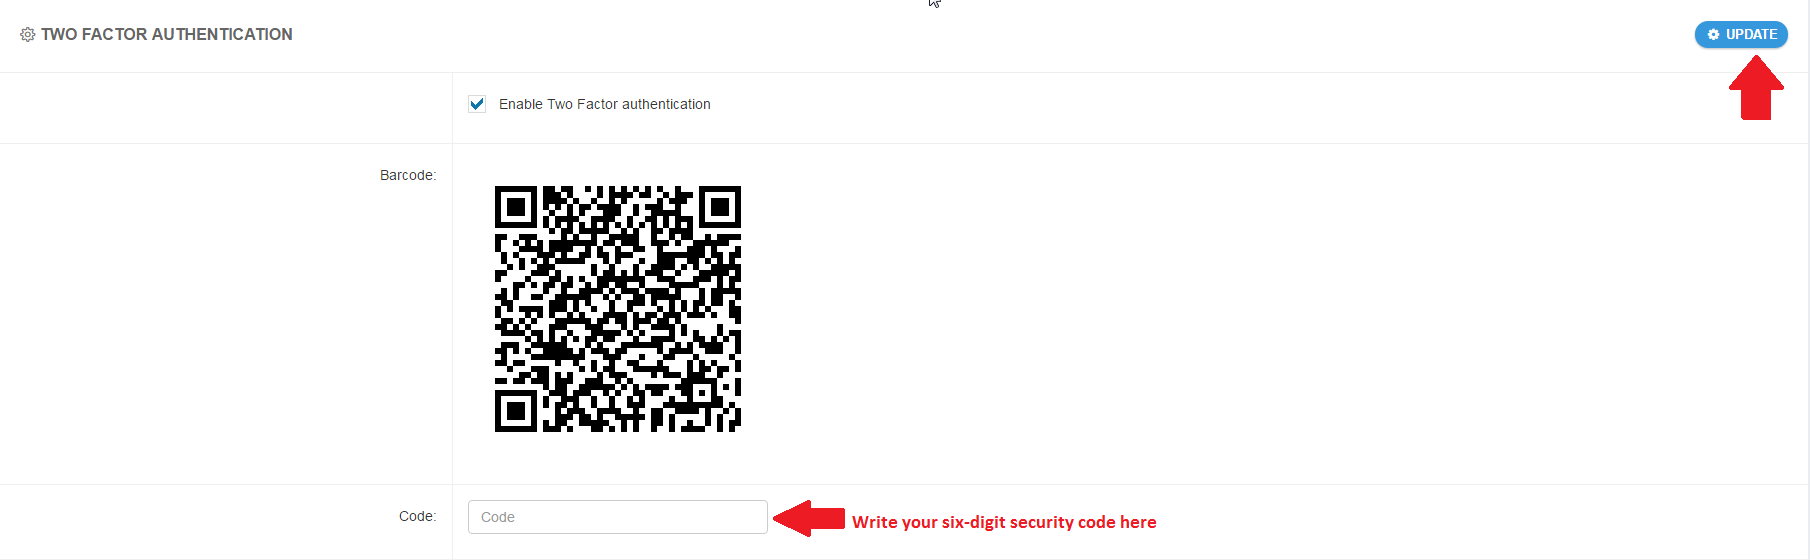 Enable Two Factor authentication 2